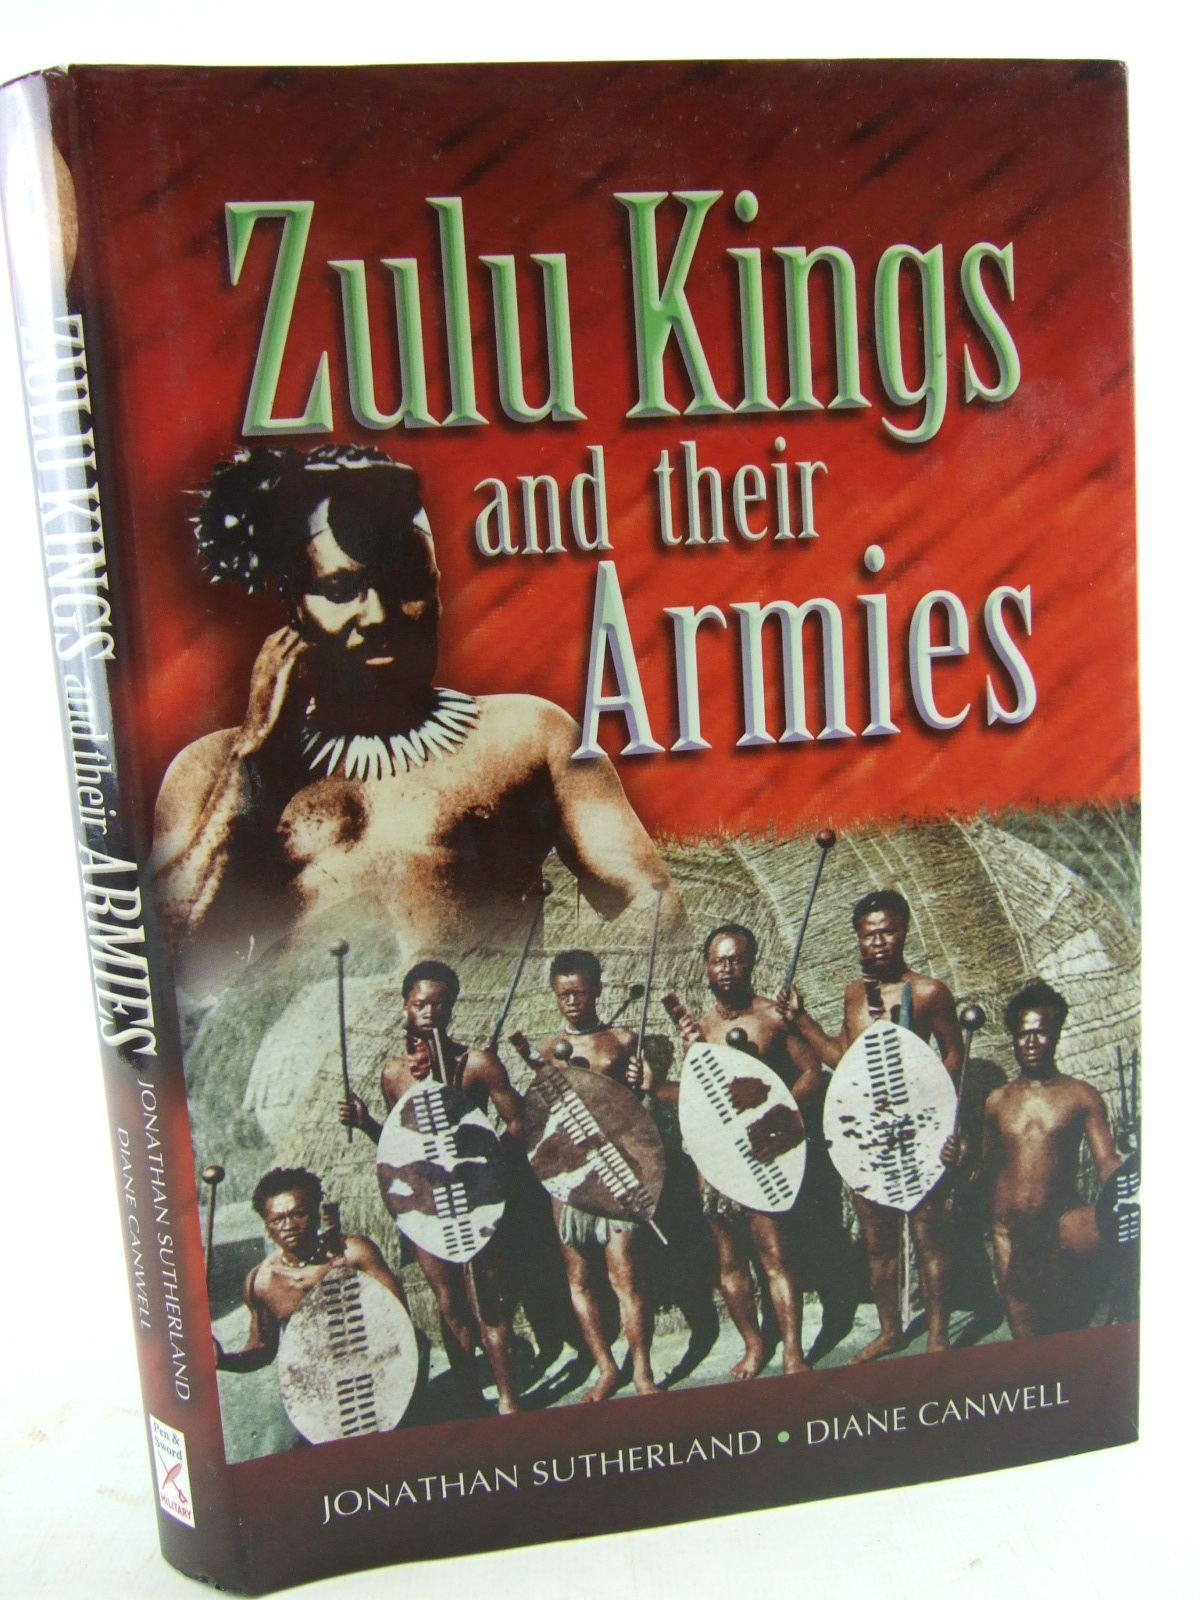 Photo of THE ZULU KINGS AND THEIR ARMIES written by Sutherland, Jonathan<br />Canwell, Diane published by Pen & Sword Military (STOCK CODE: 1805524)  for sale by Stella & Rose's Books